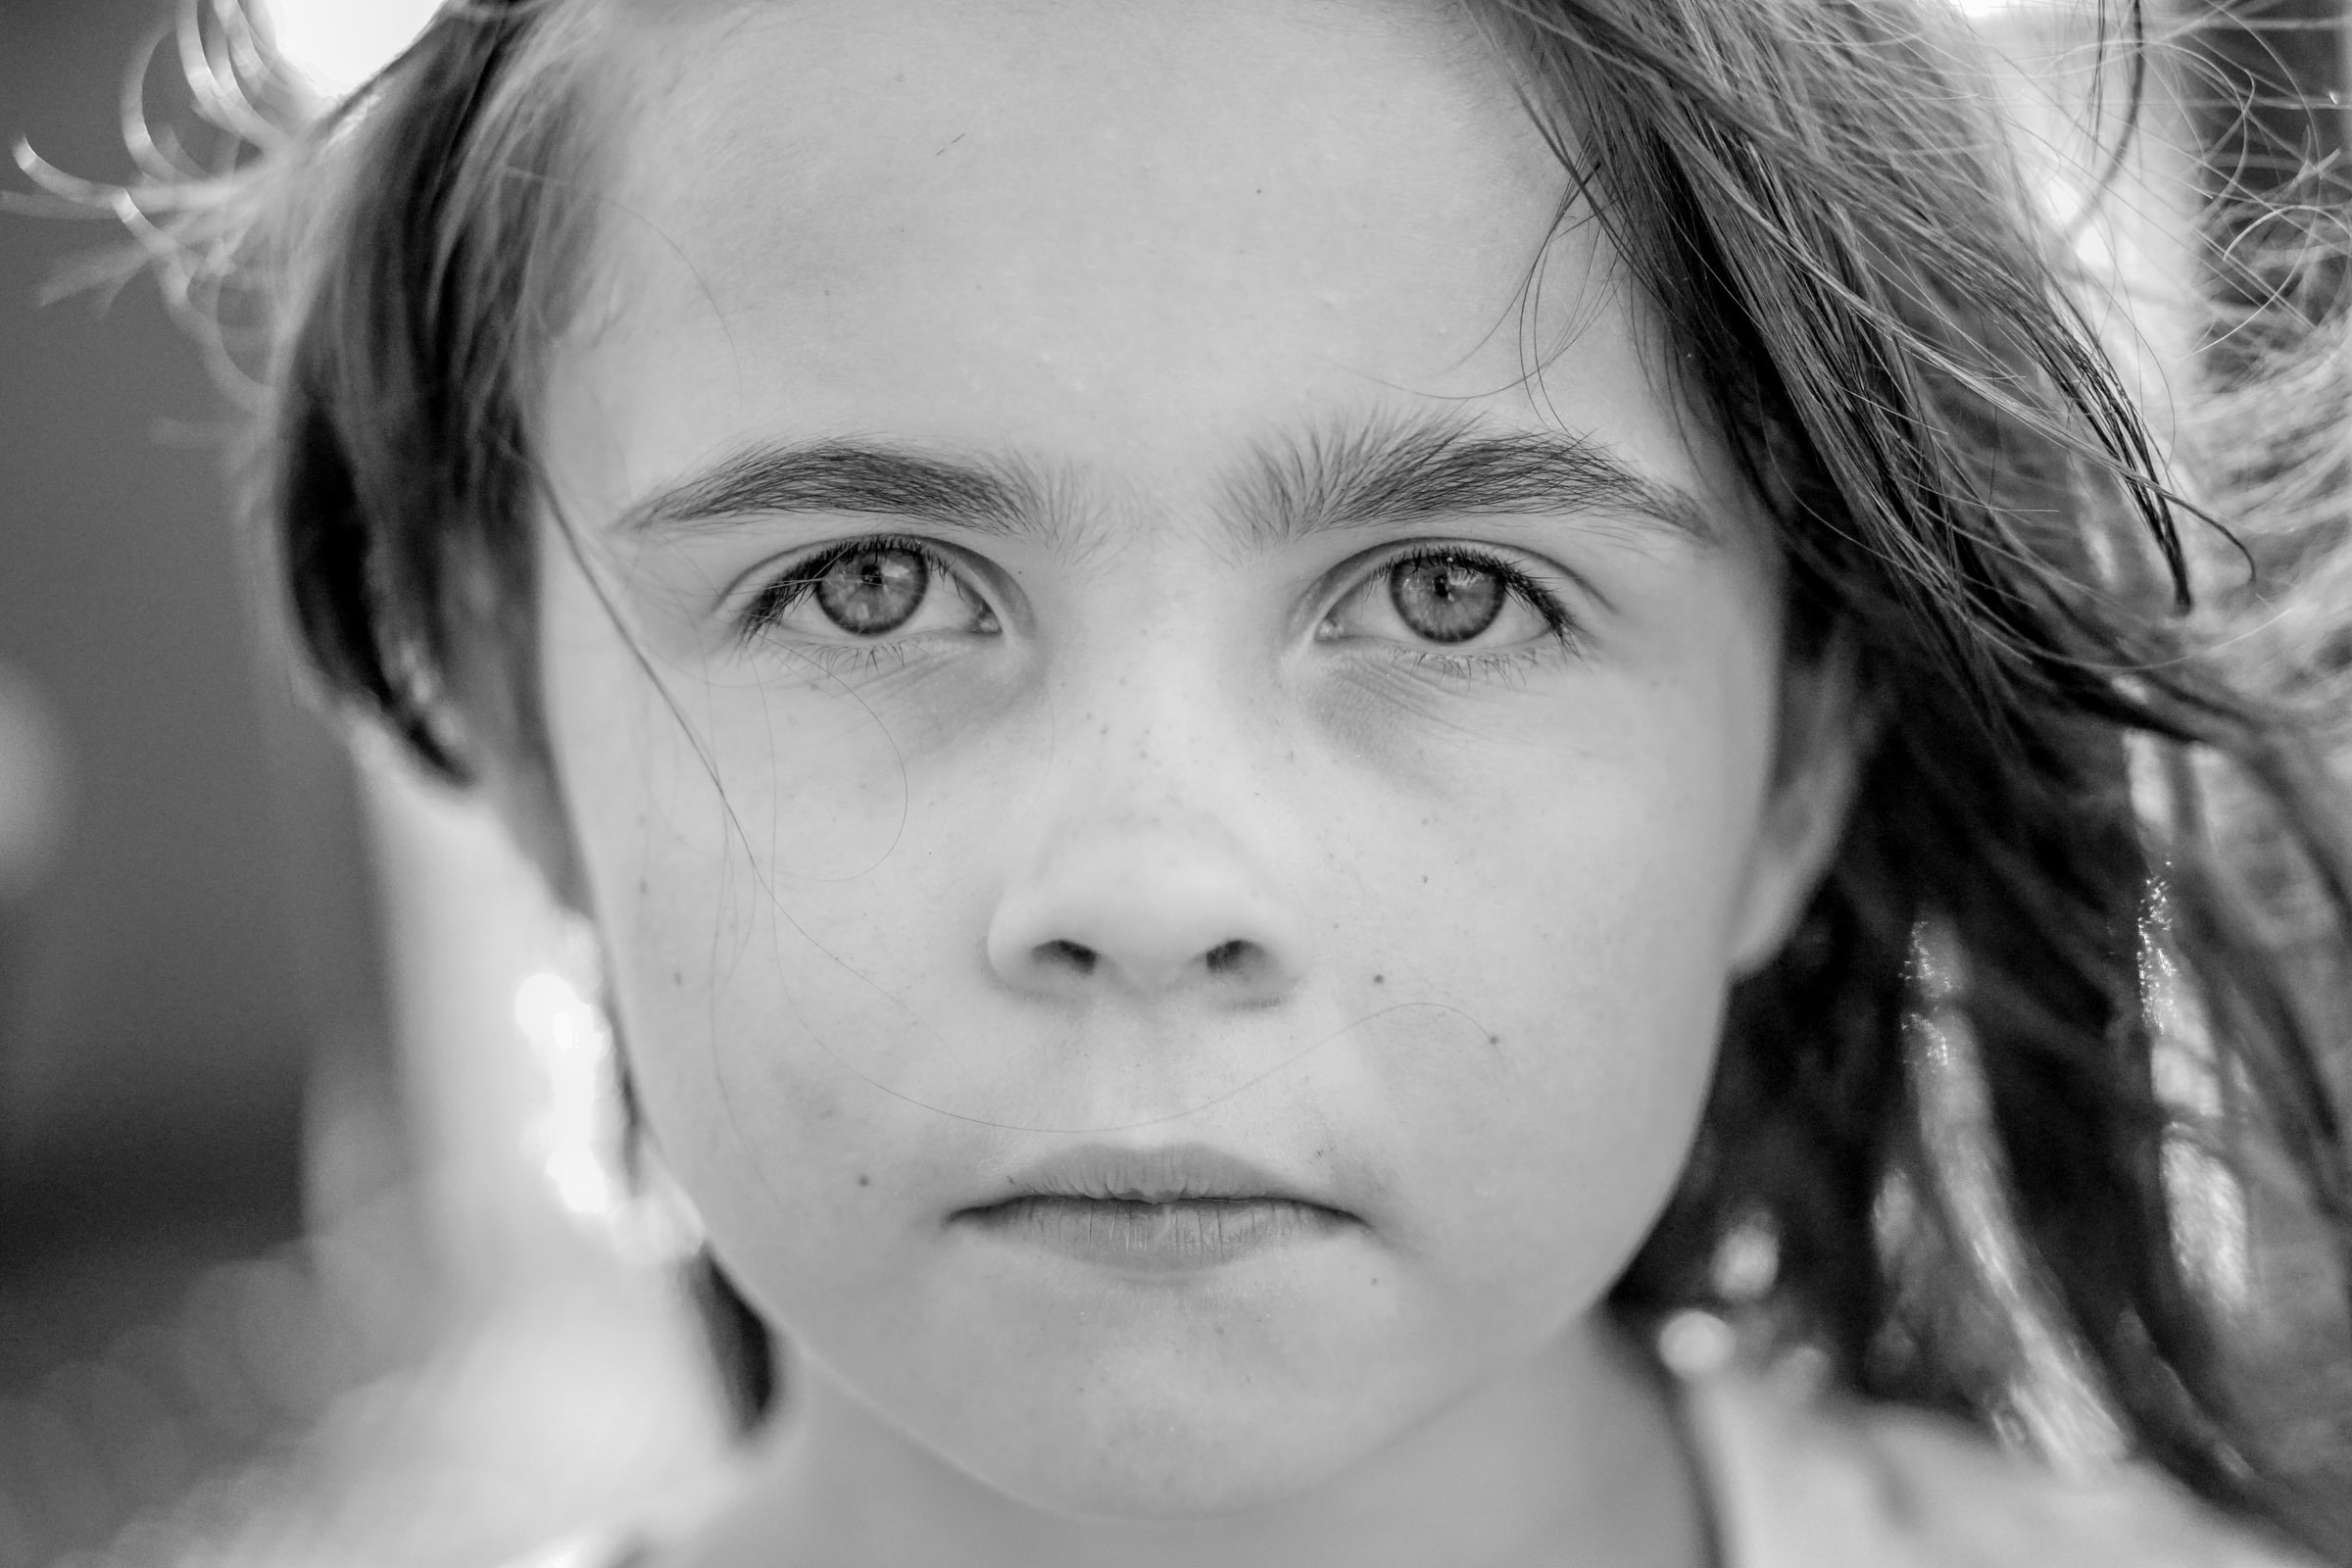 little girl looking at the camera, black and white photo